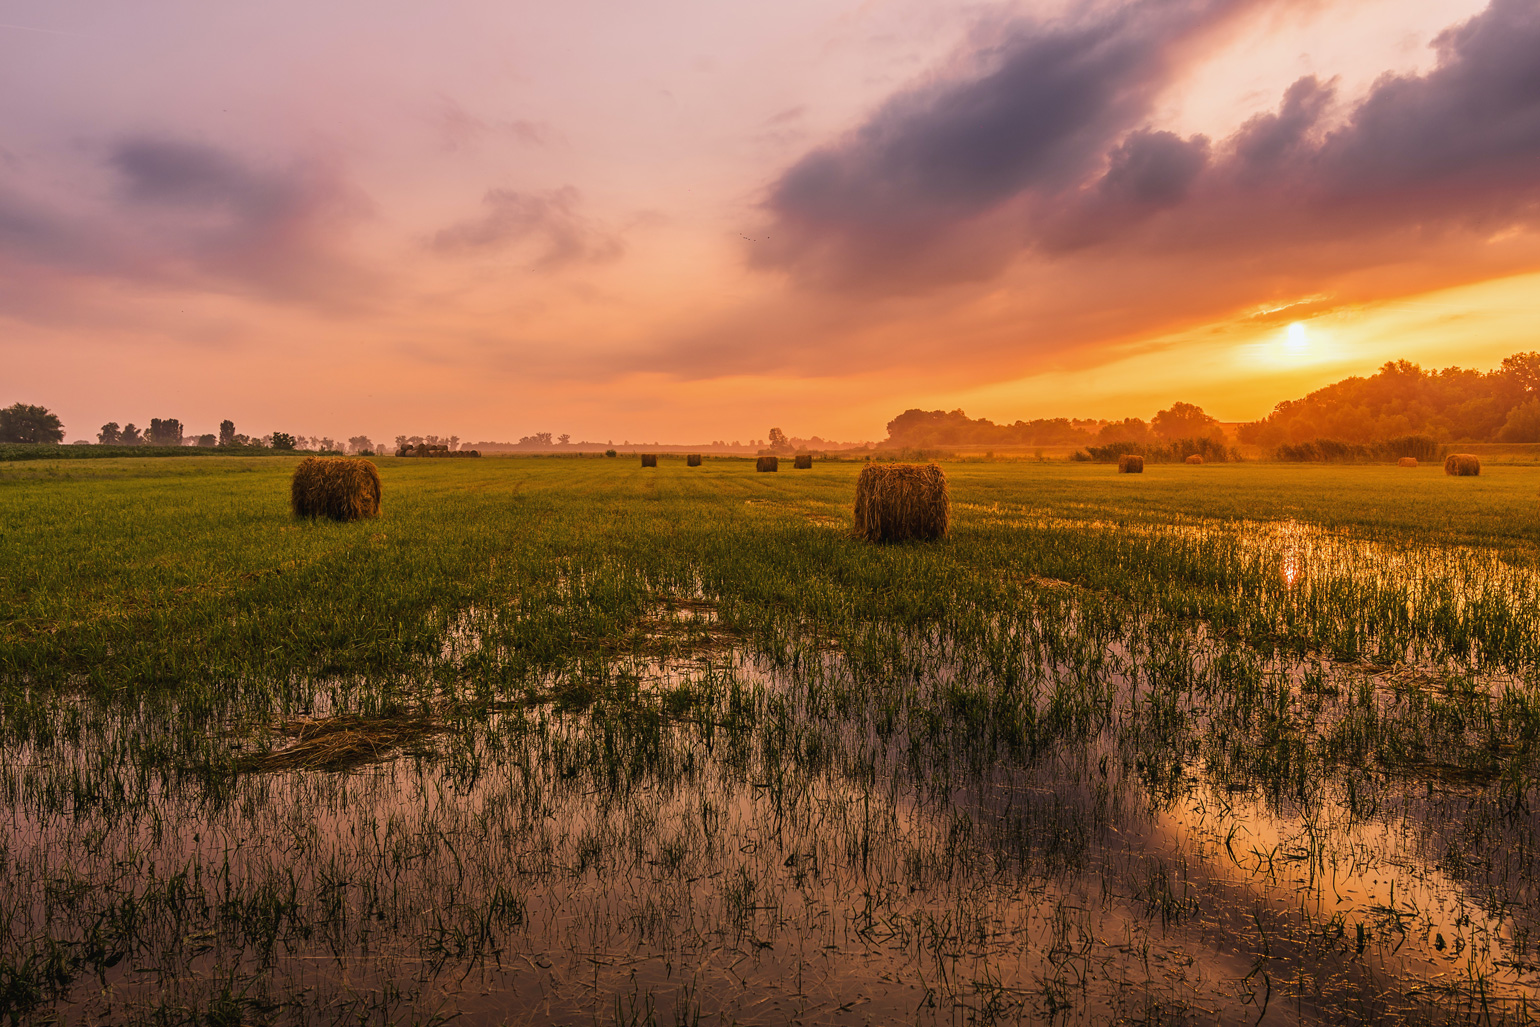 A wet field with hay bales pictured under a sun set